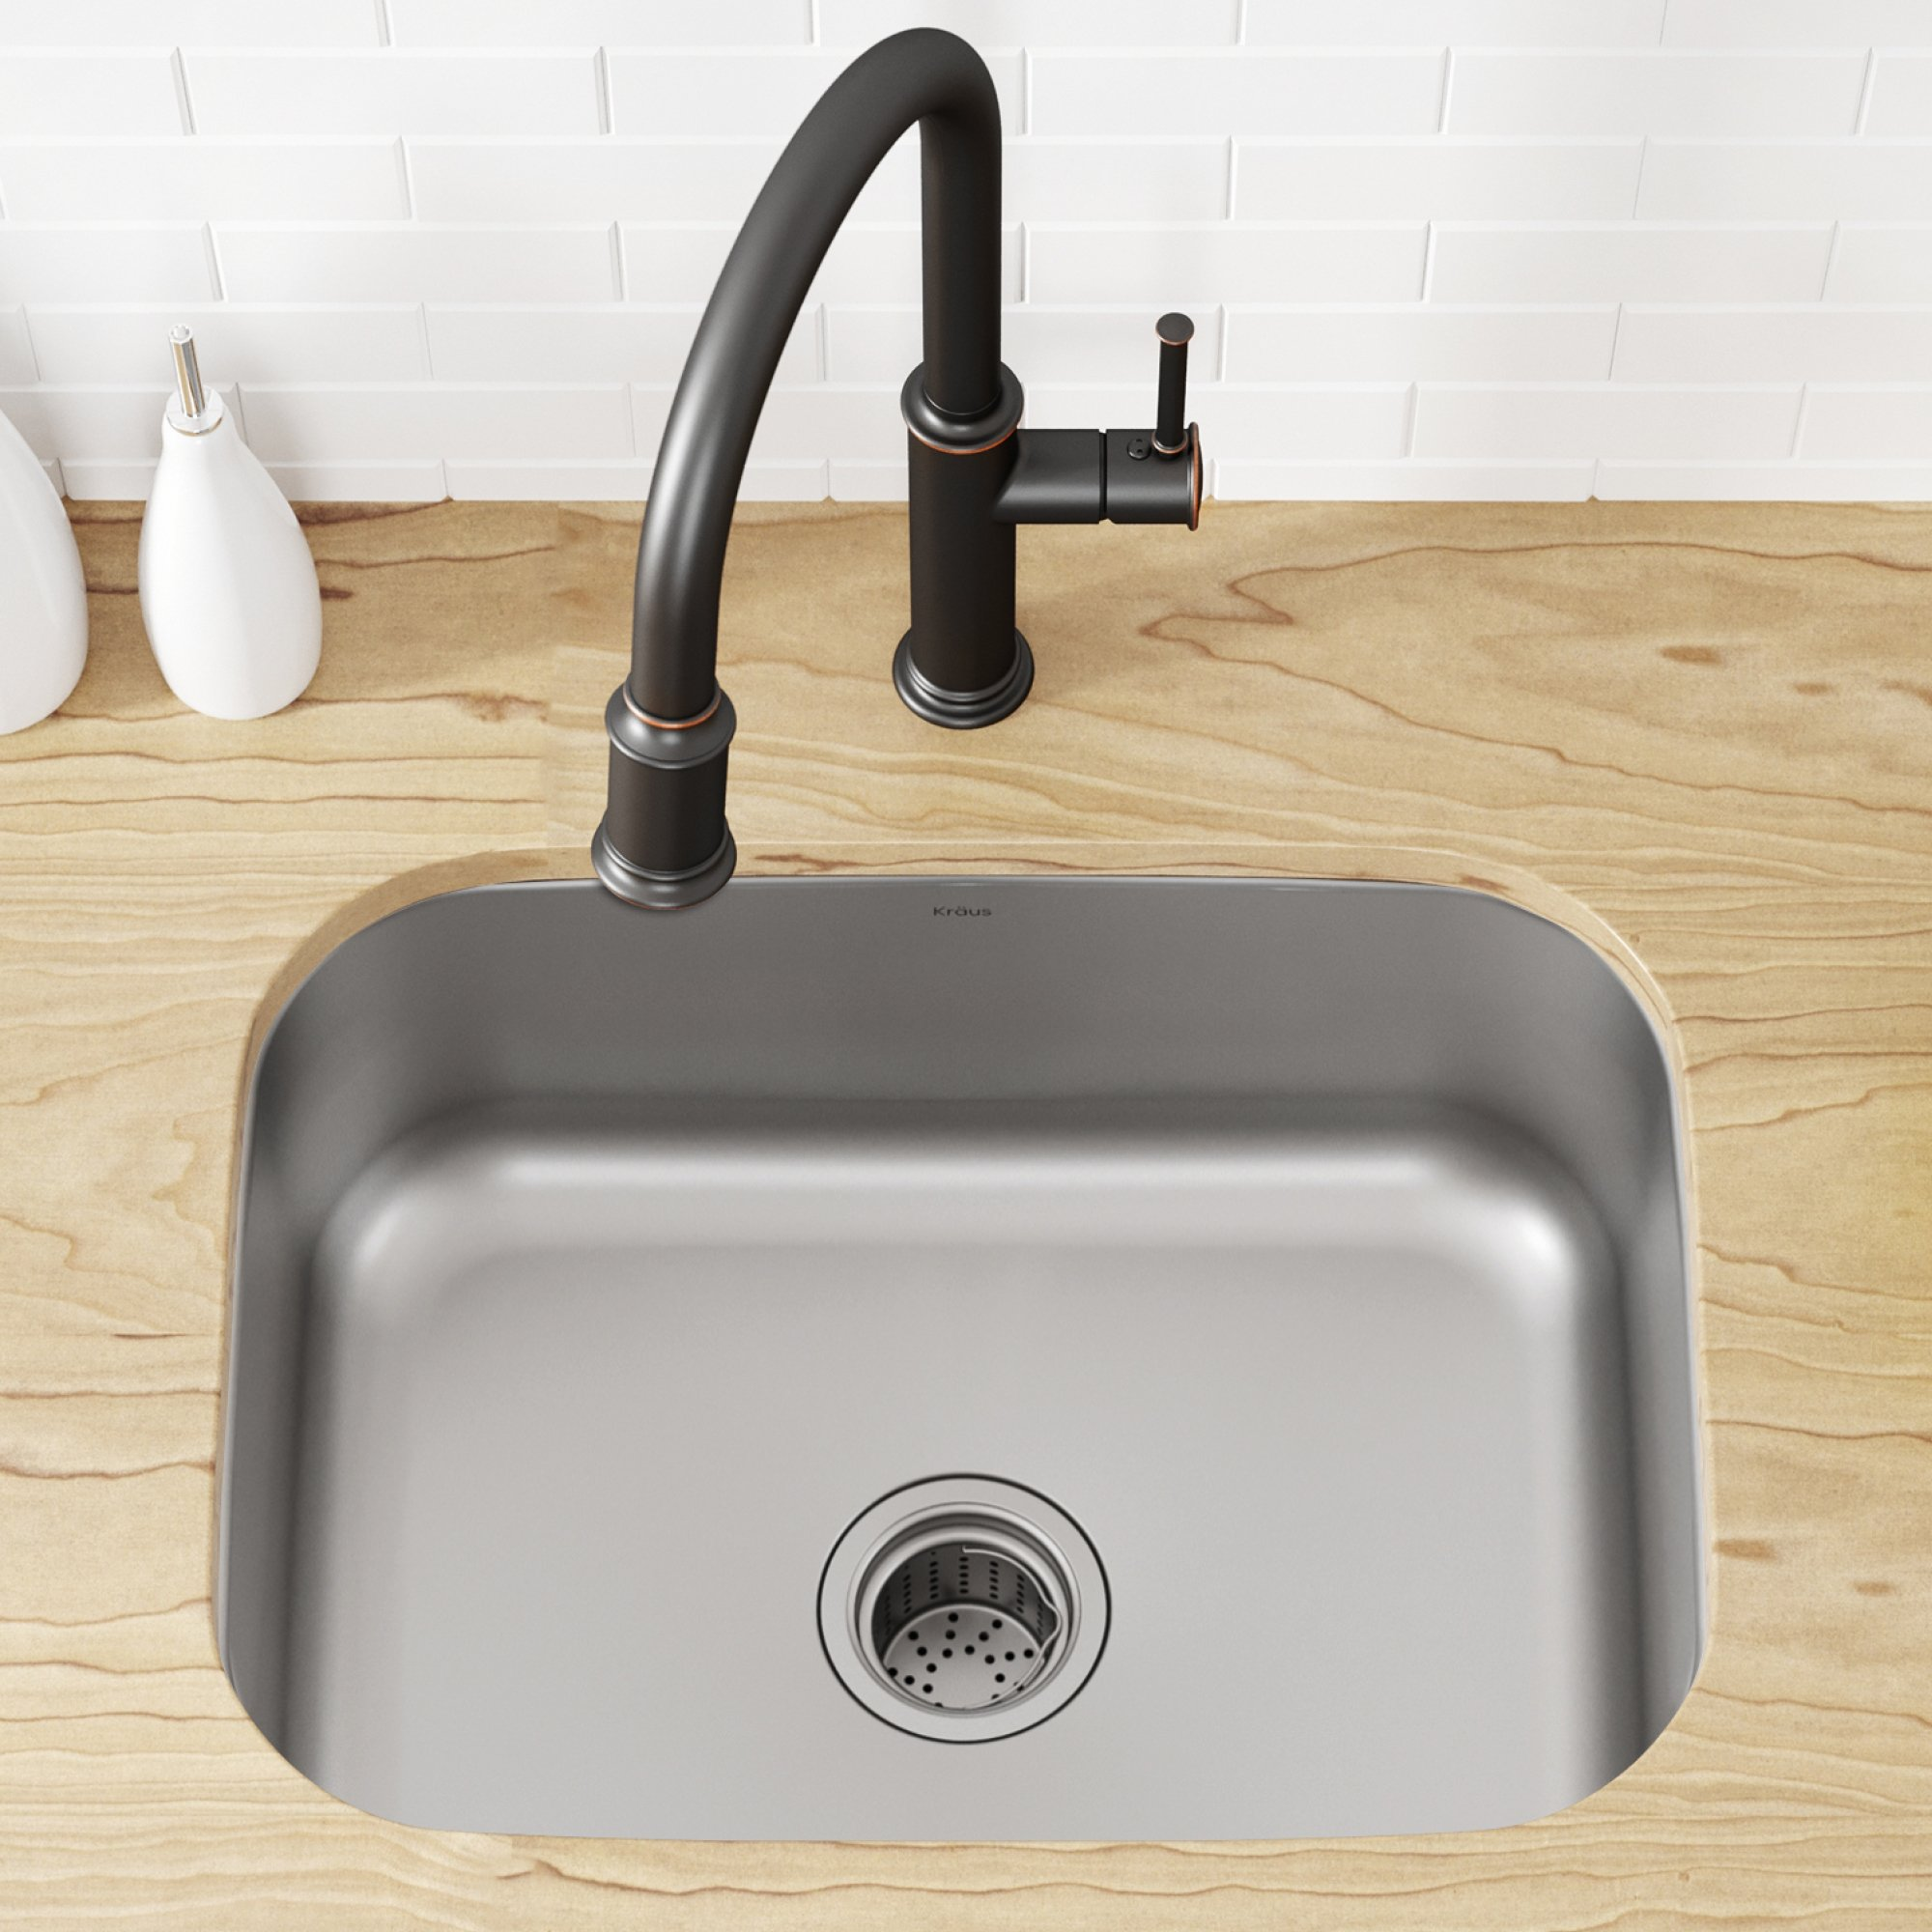 Kraus KBU12 23 inch Undermount Single Bowl 16 gauge Stainless Steel Kitchen Sink by Kraus (Image #5)